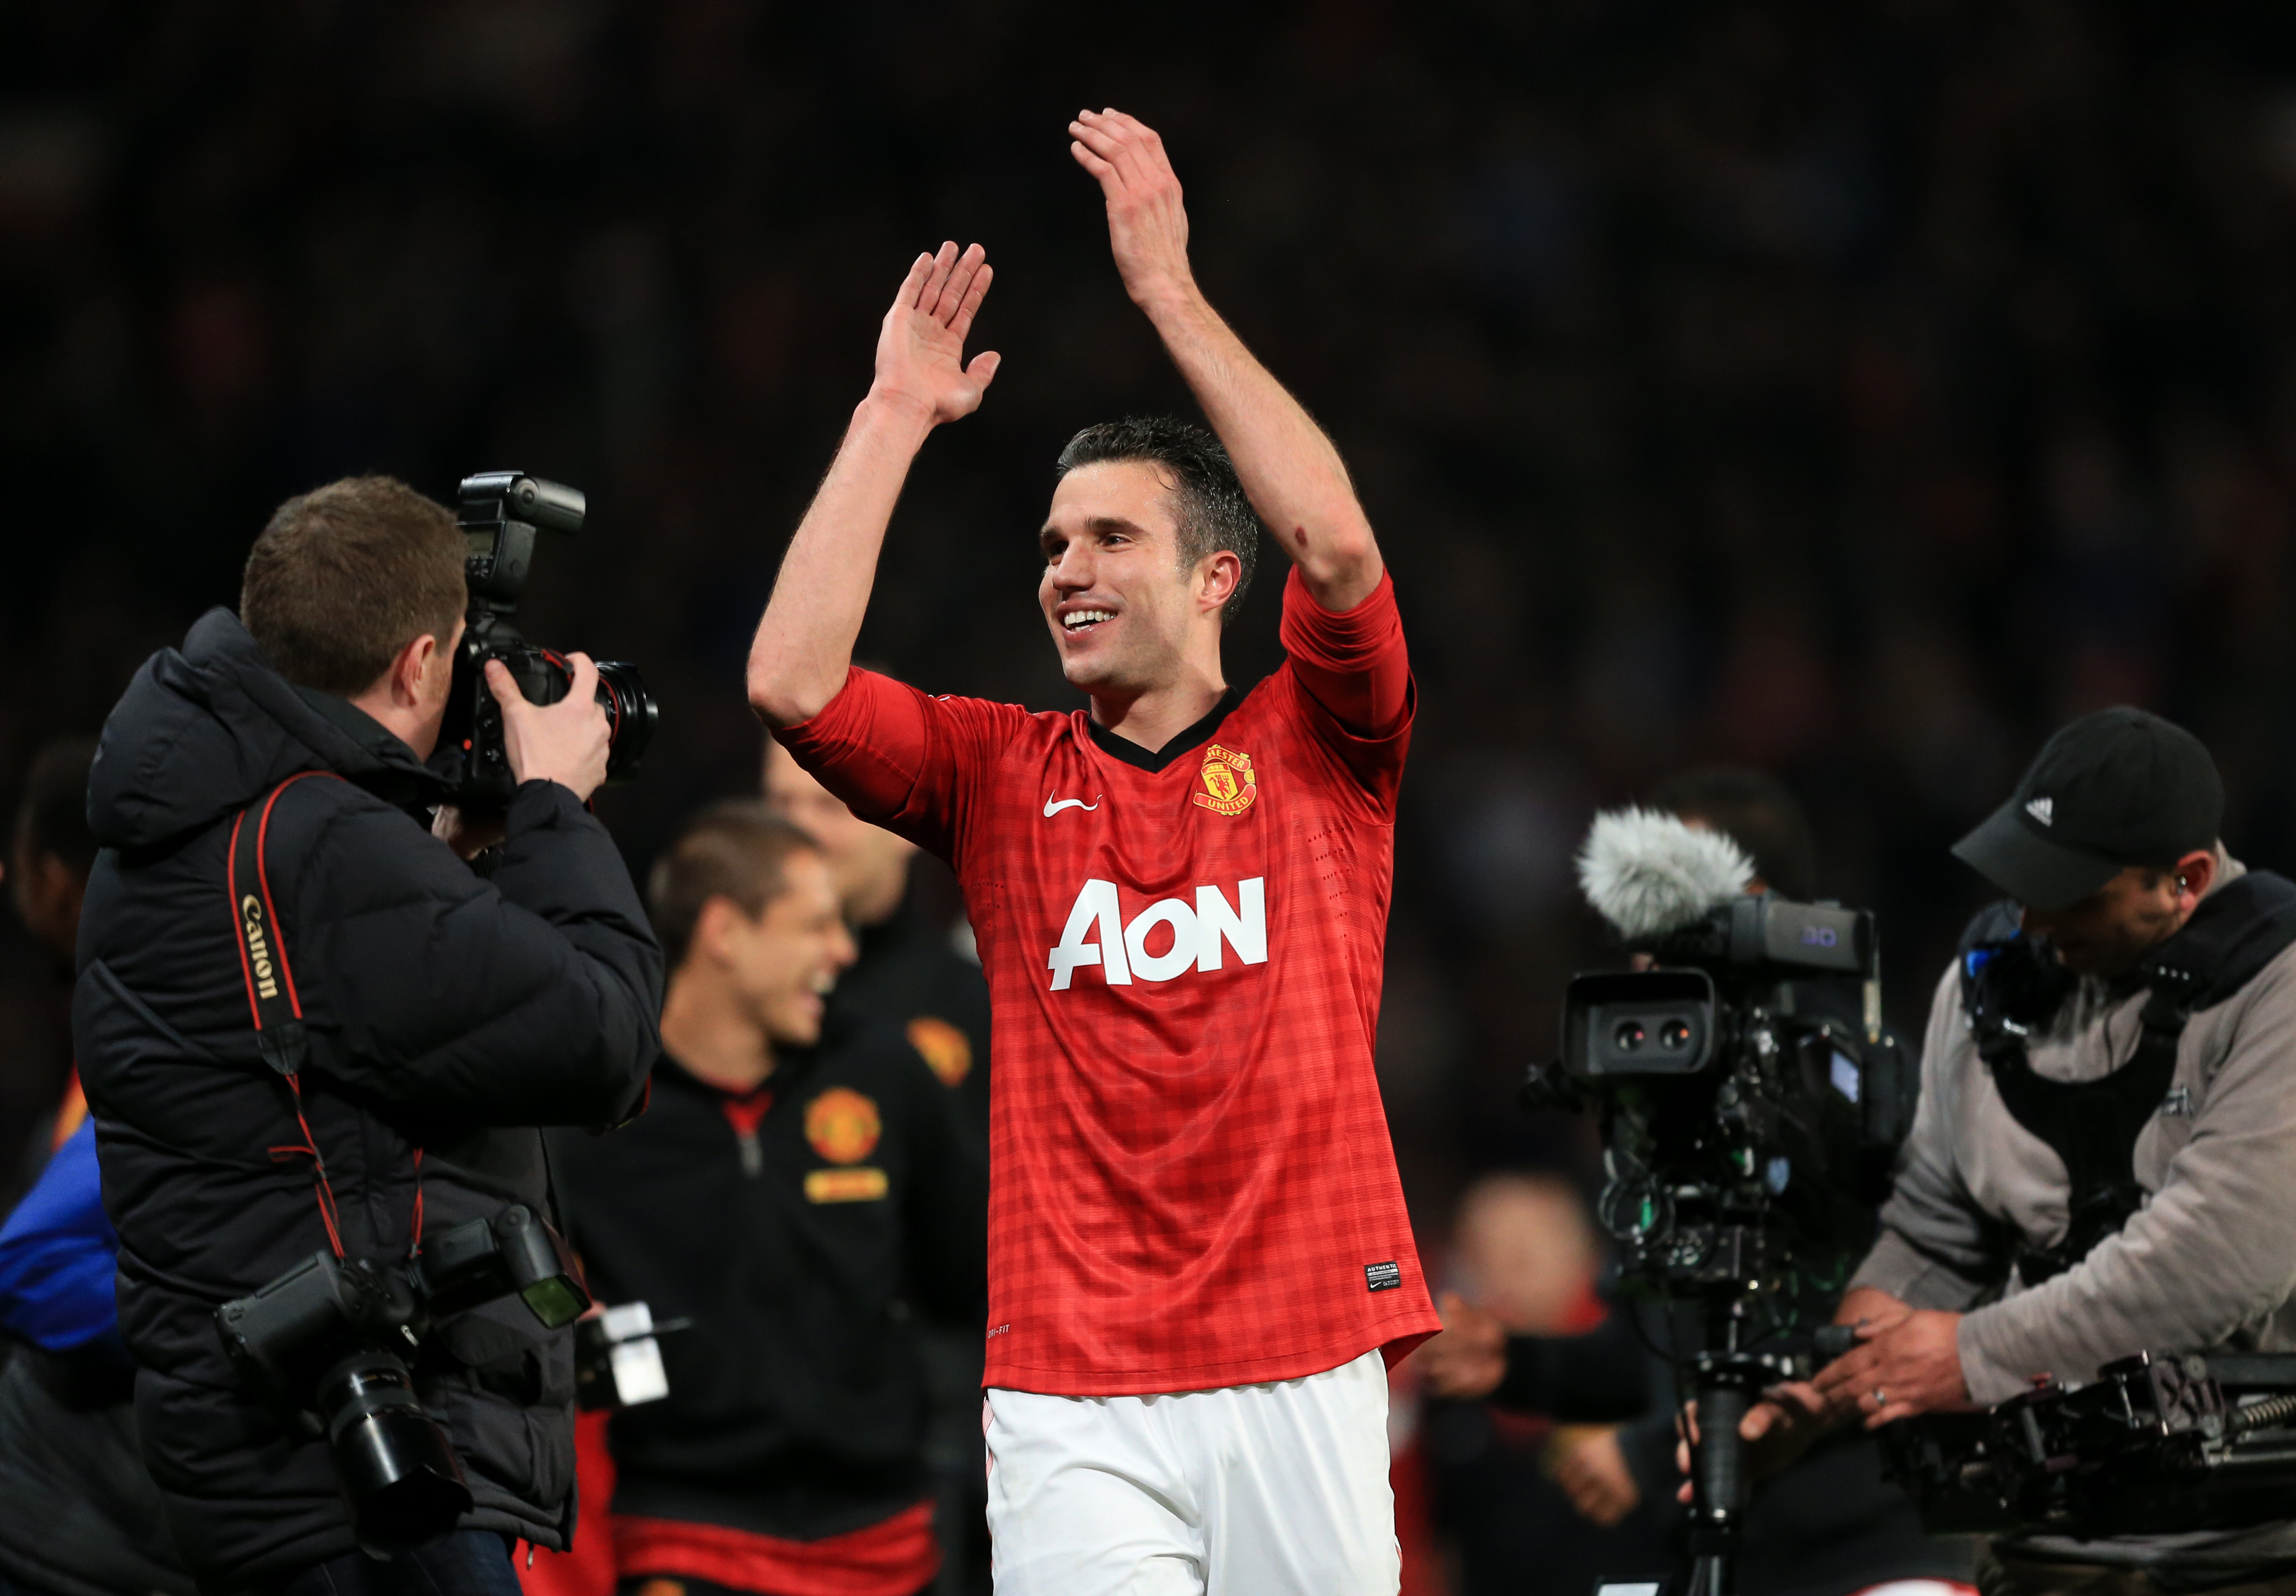 Van Persie celebrates winning the Premier League with United. Image: PA Images